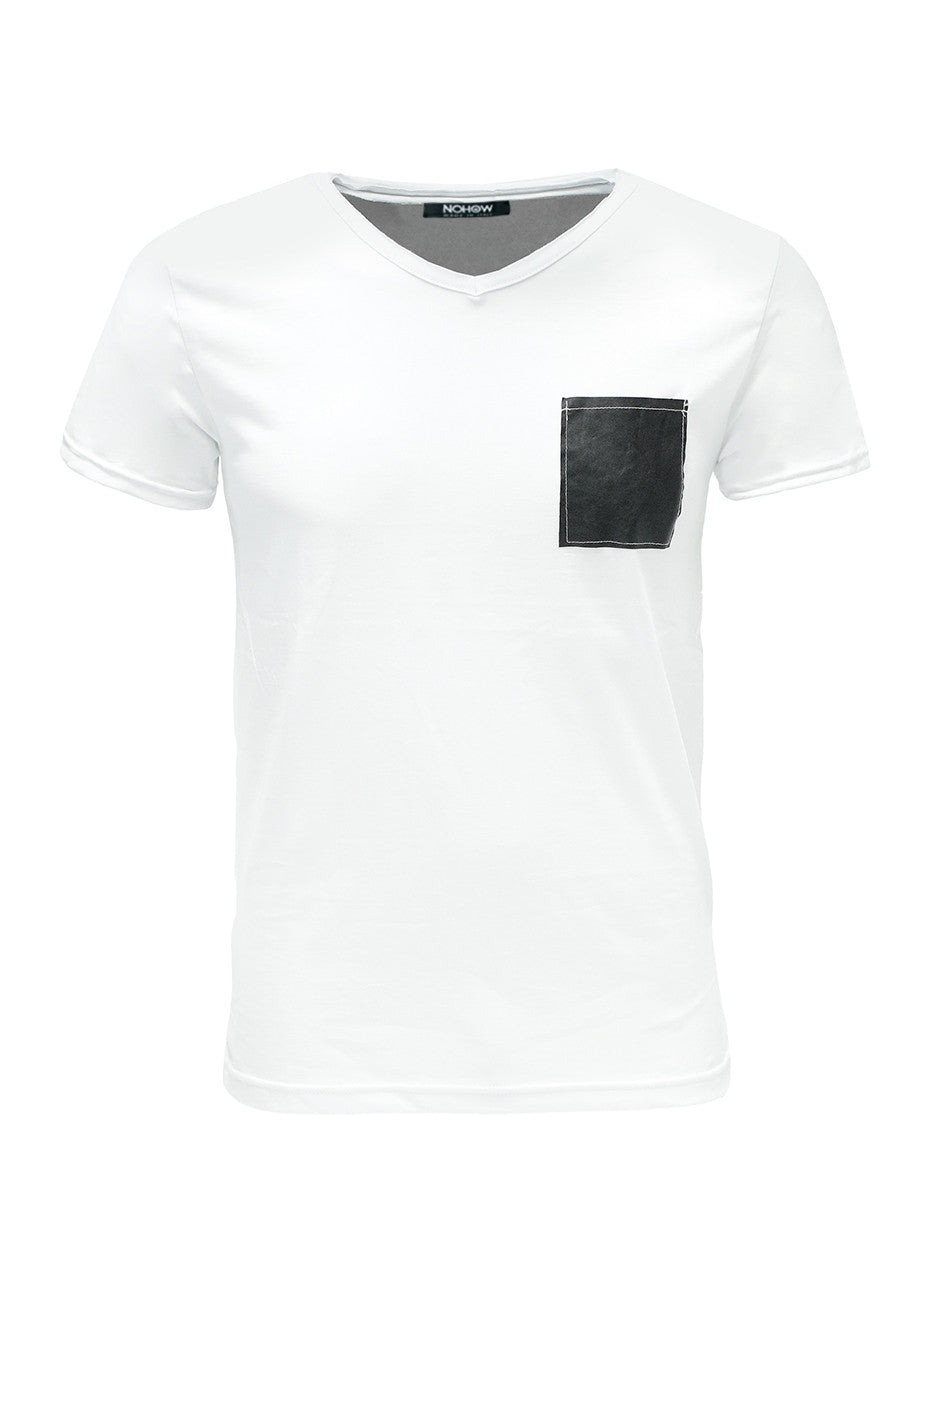 WHITE POCKET LEATHER BLACK T-SHIRT